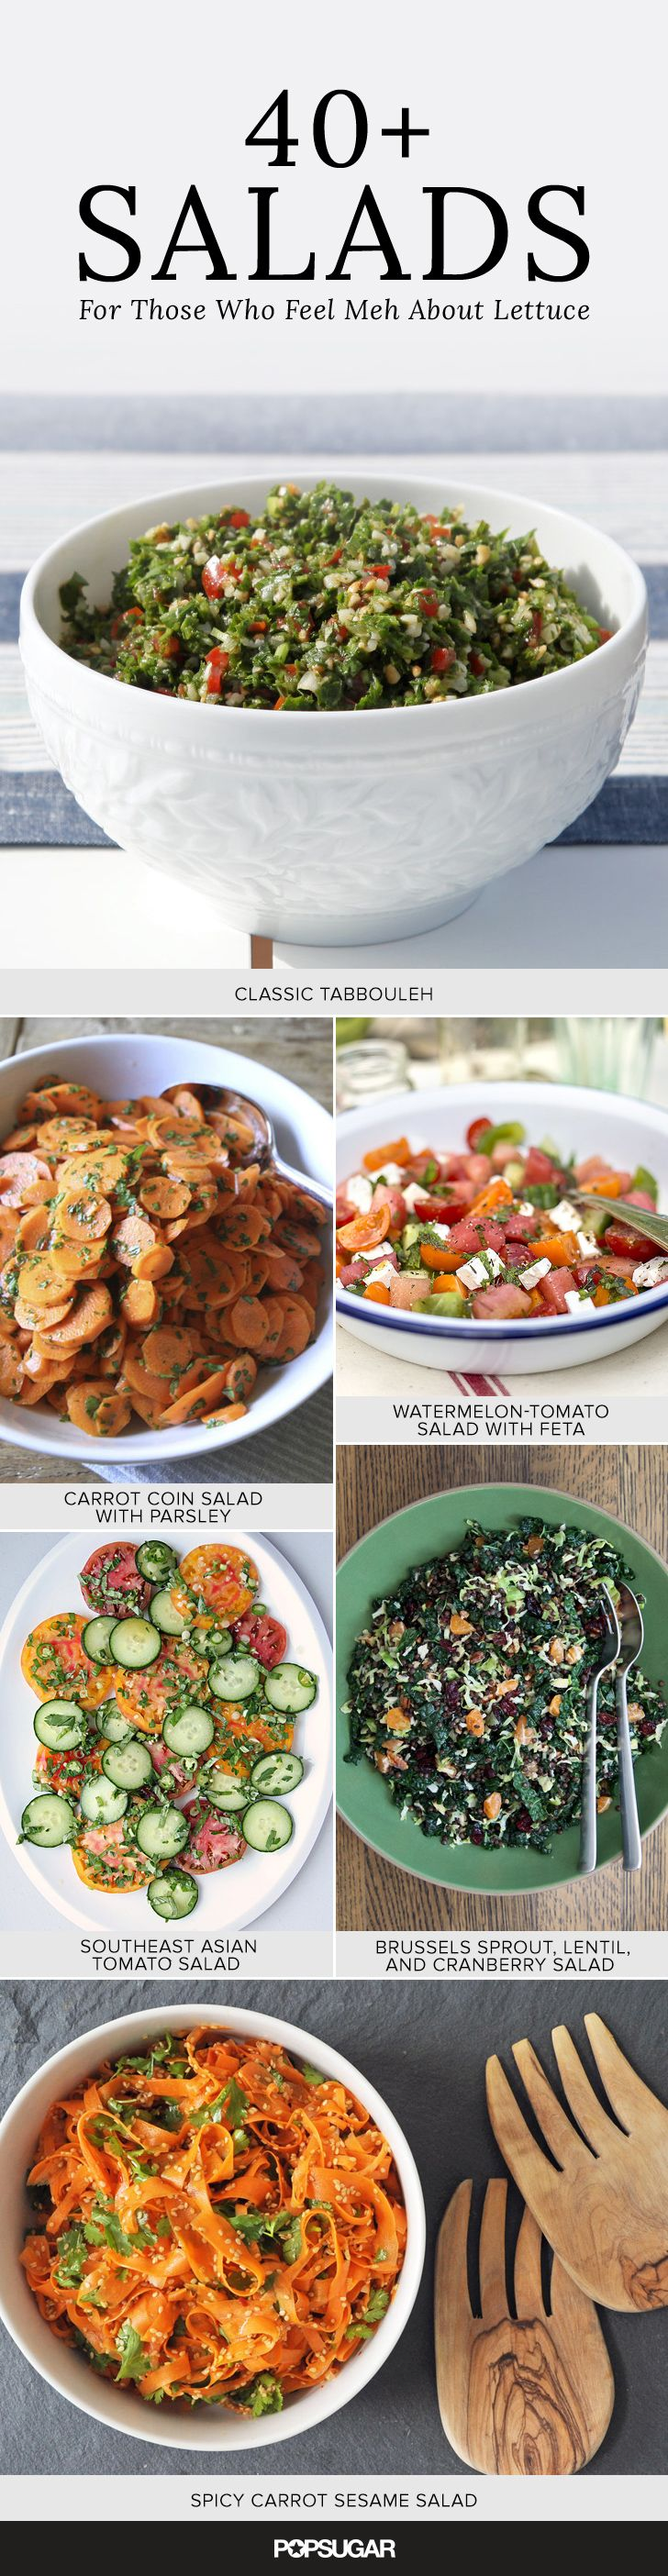 Salad recipes don't begin and end with a head of lettuce or a bag of mixed greens. While they have their time and place, it's easy to get bored with these delicate (in both flavor and texture) greens. Instead, make one of these exciting recipes starring everything from cruciferous vegetables like kale, broccoli, and brussels sprouts to juicy tomatoes, crisp carrots, and even celery.